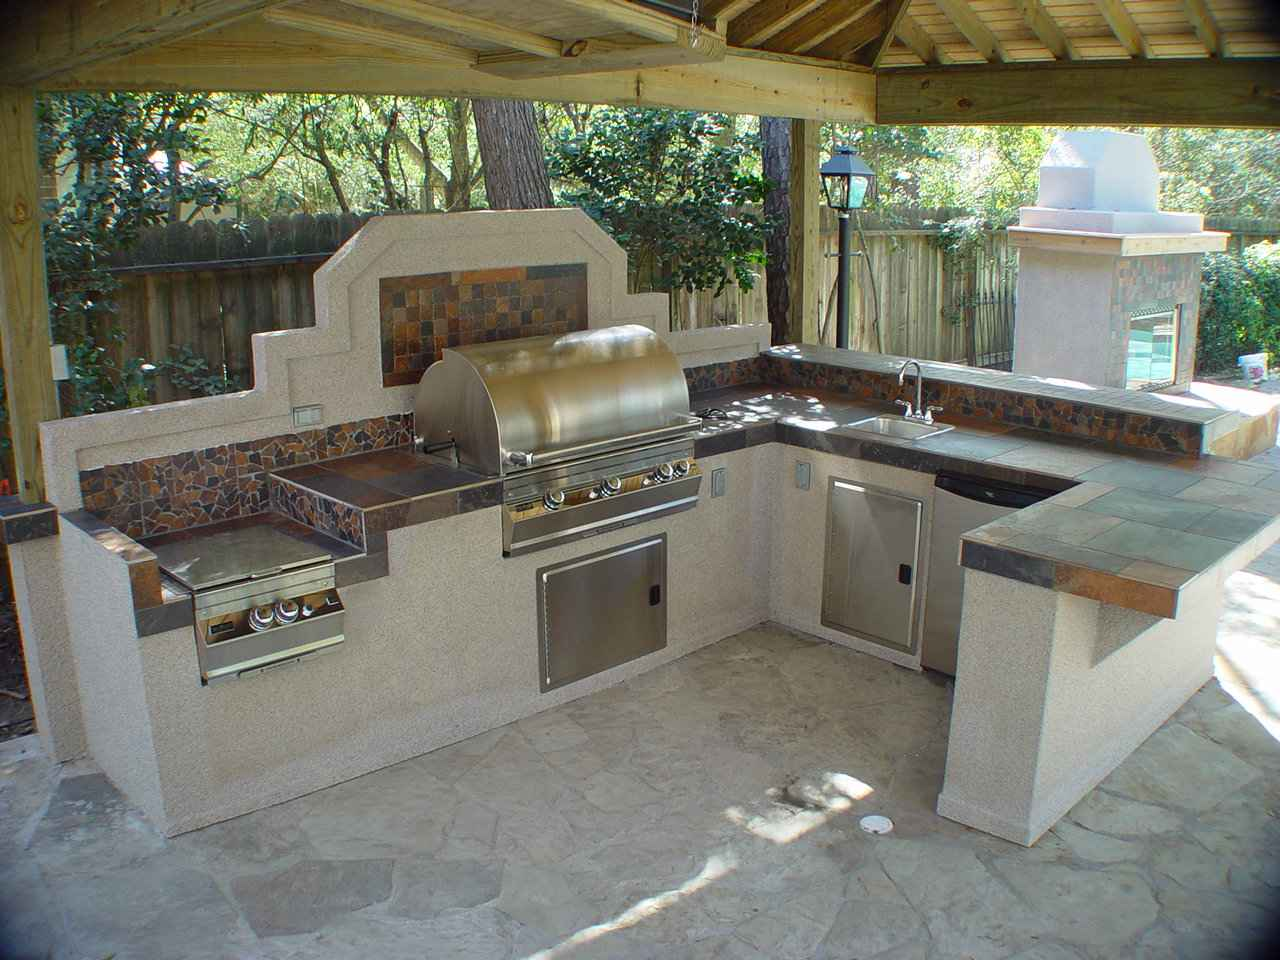 Summer Kitchen Design Plans Things To Consider When Creating Outdoor Kitchens Ideas 4 Homes